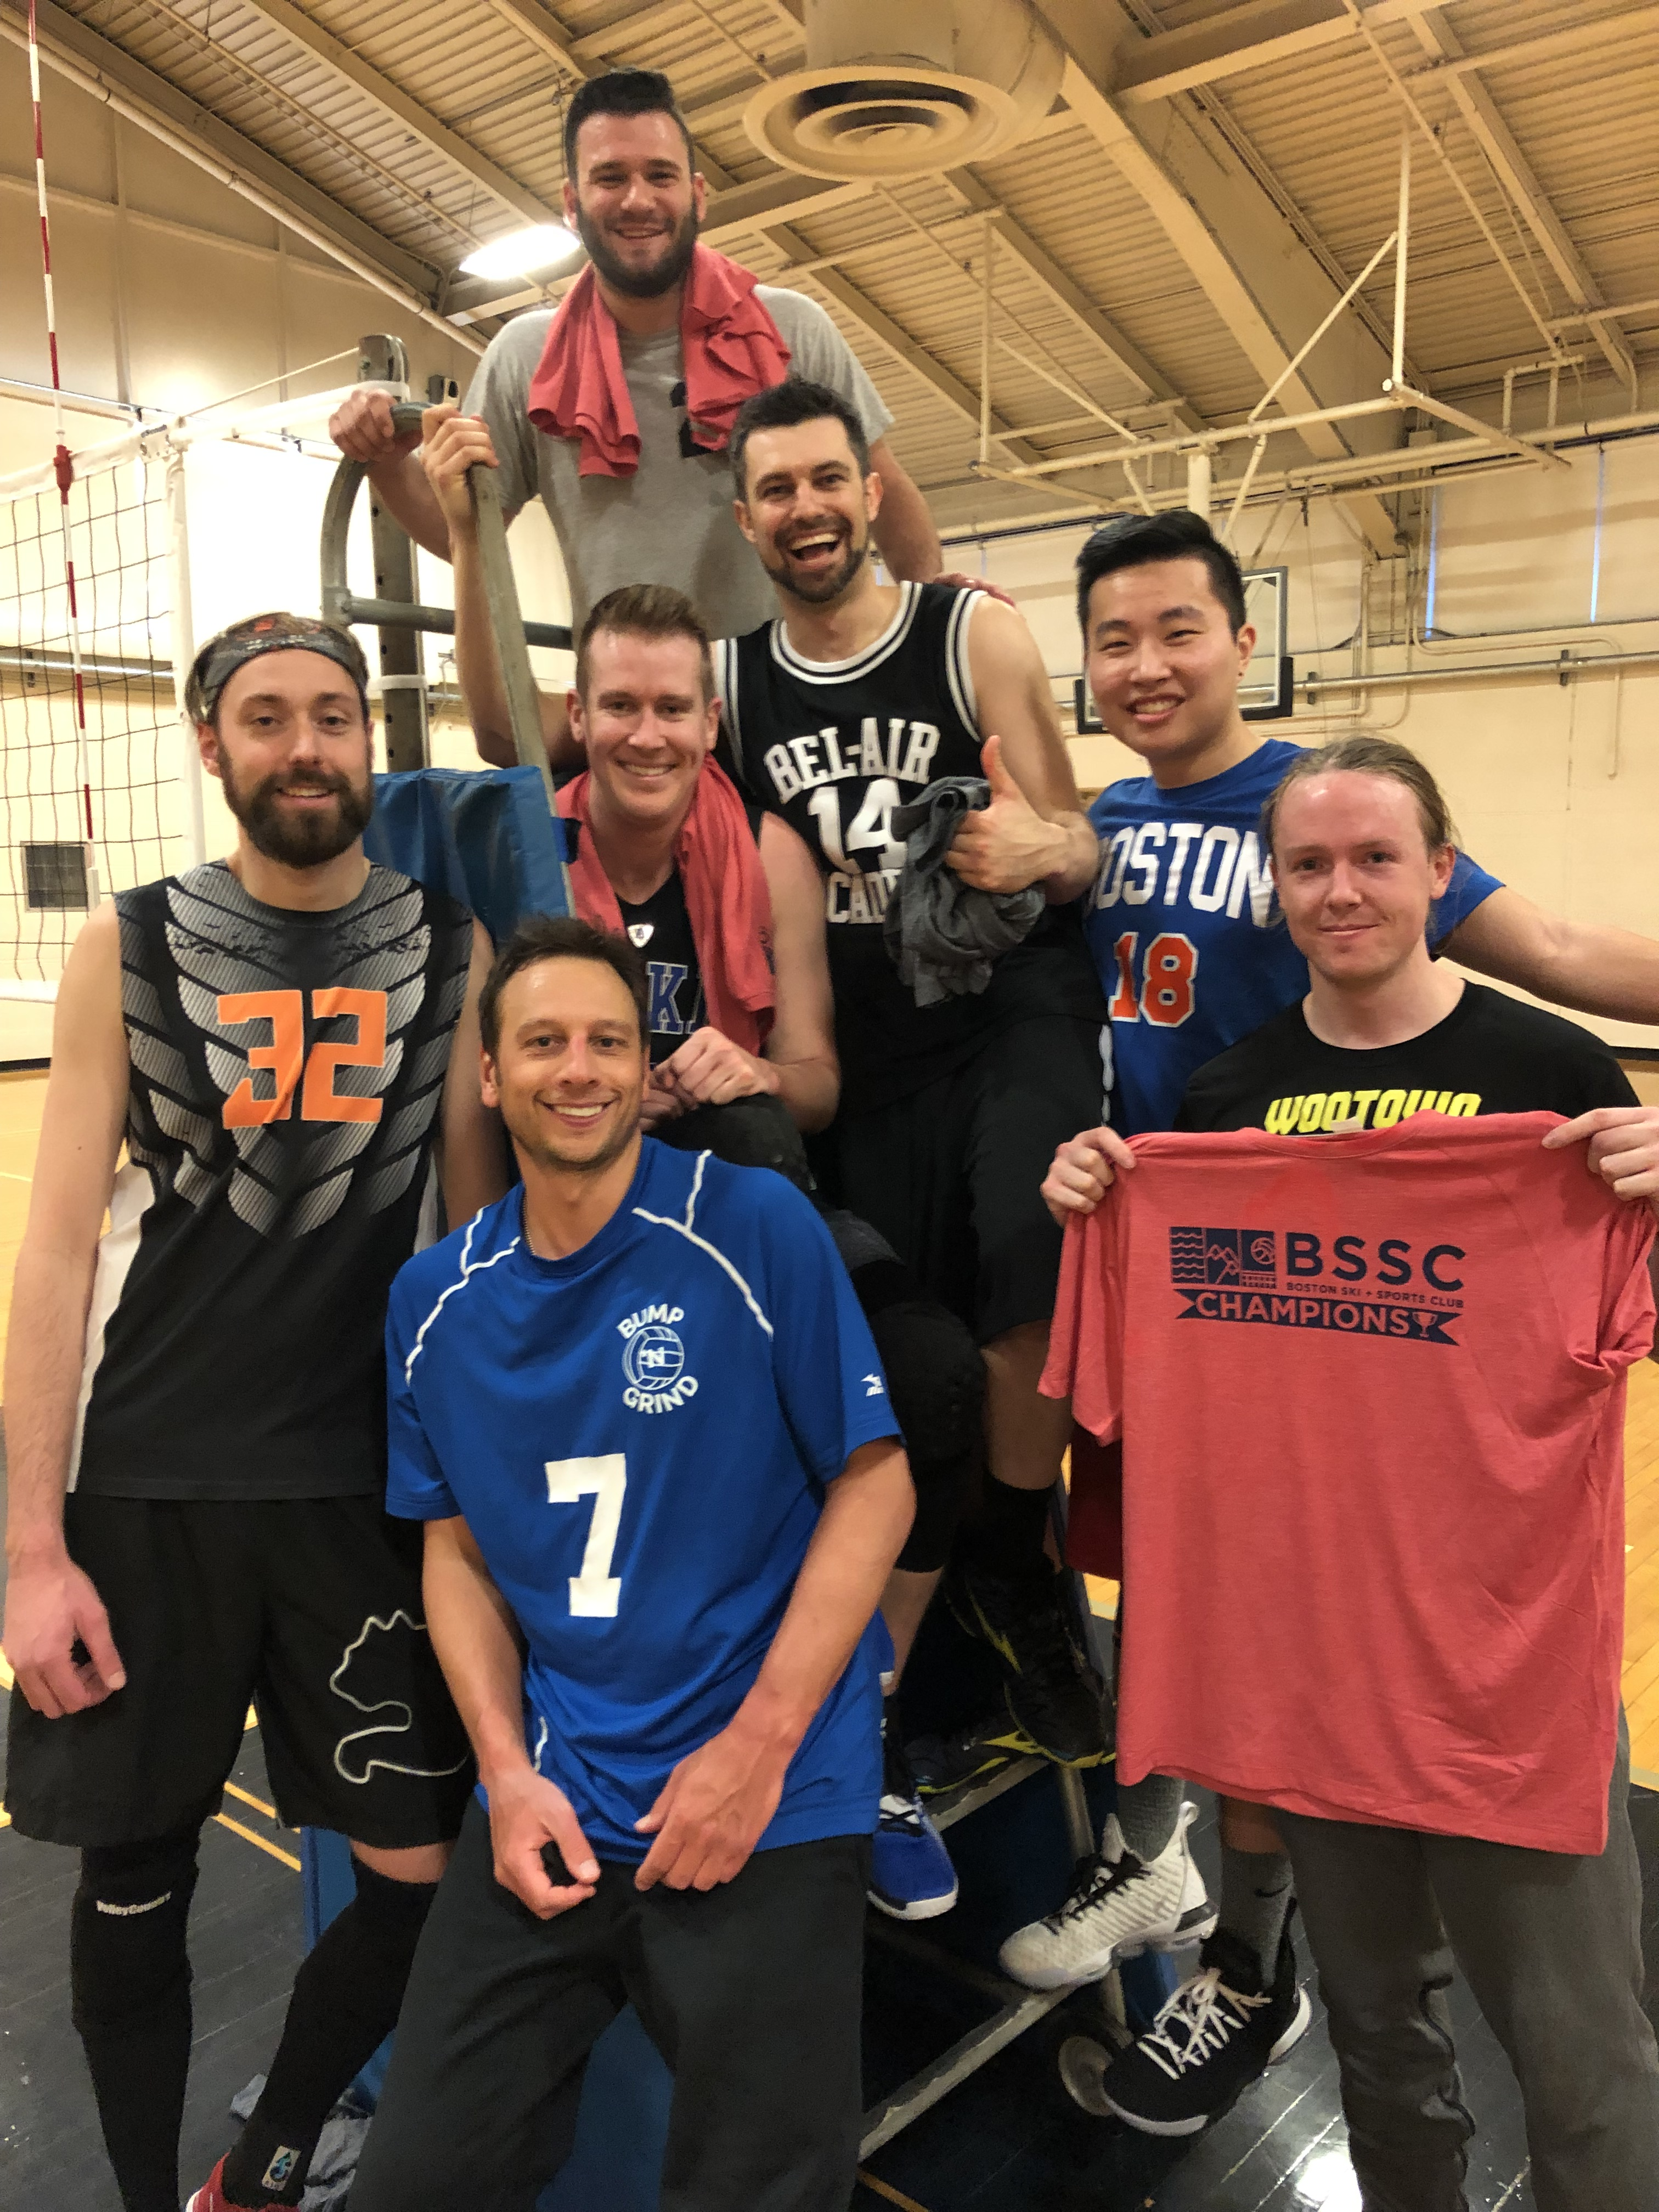 2/16/19 Free Ballin' wins MB- at Brandeis